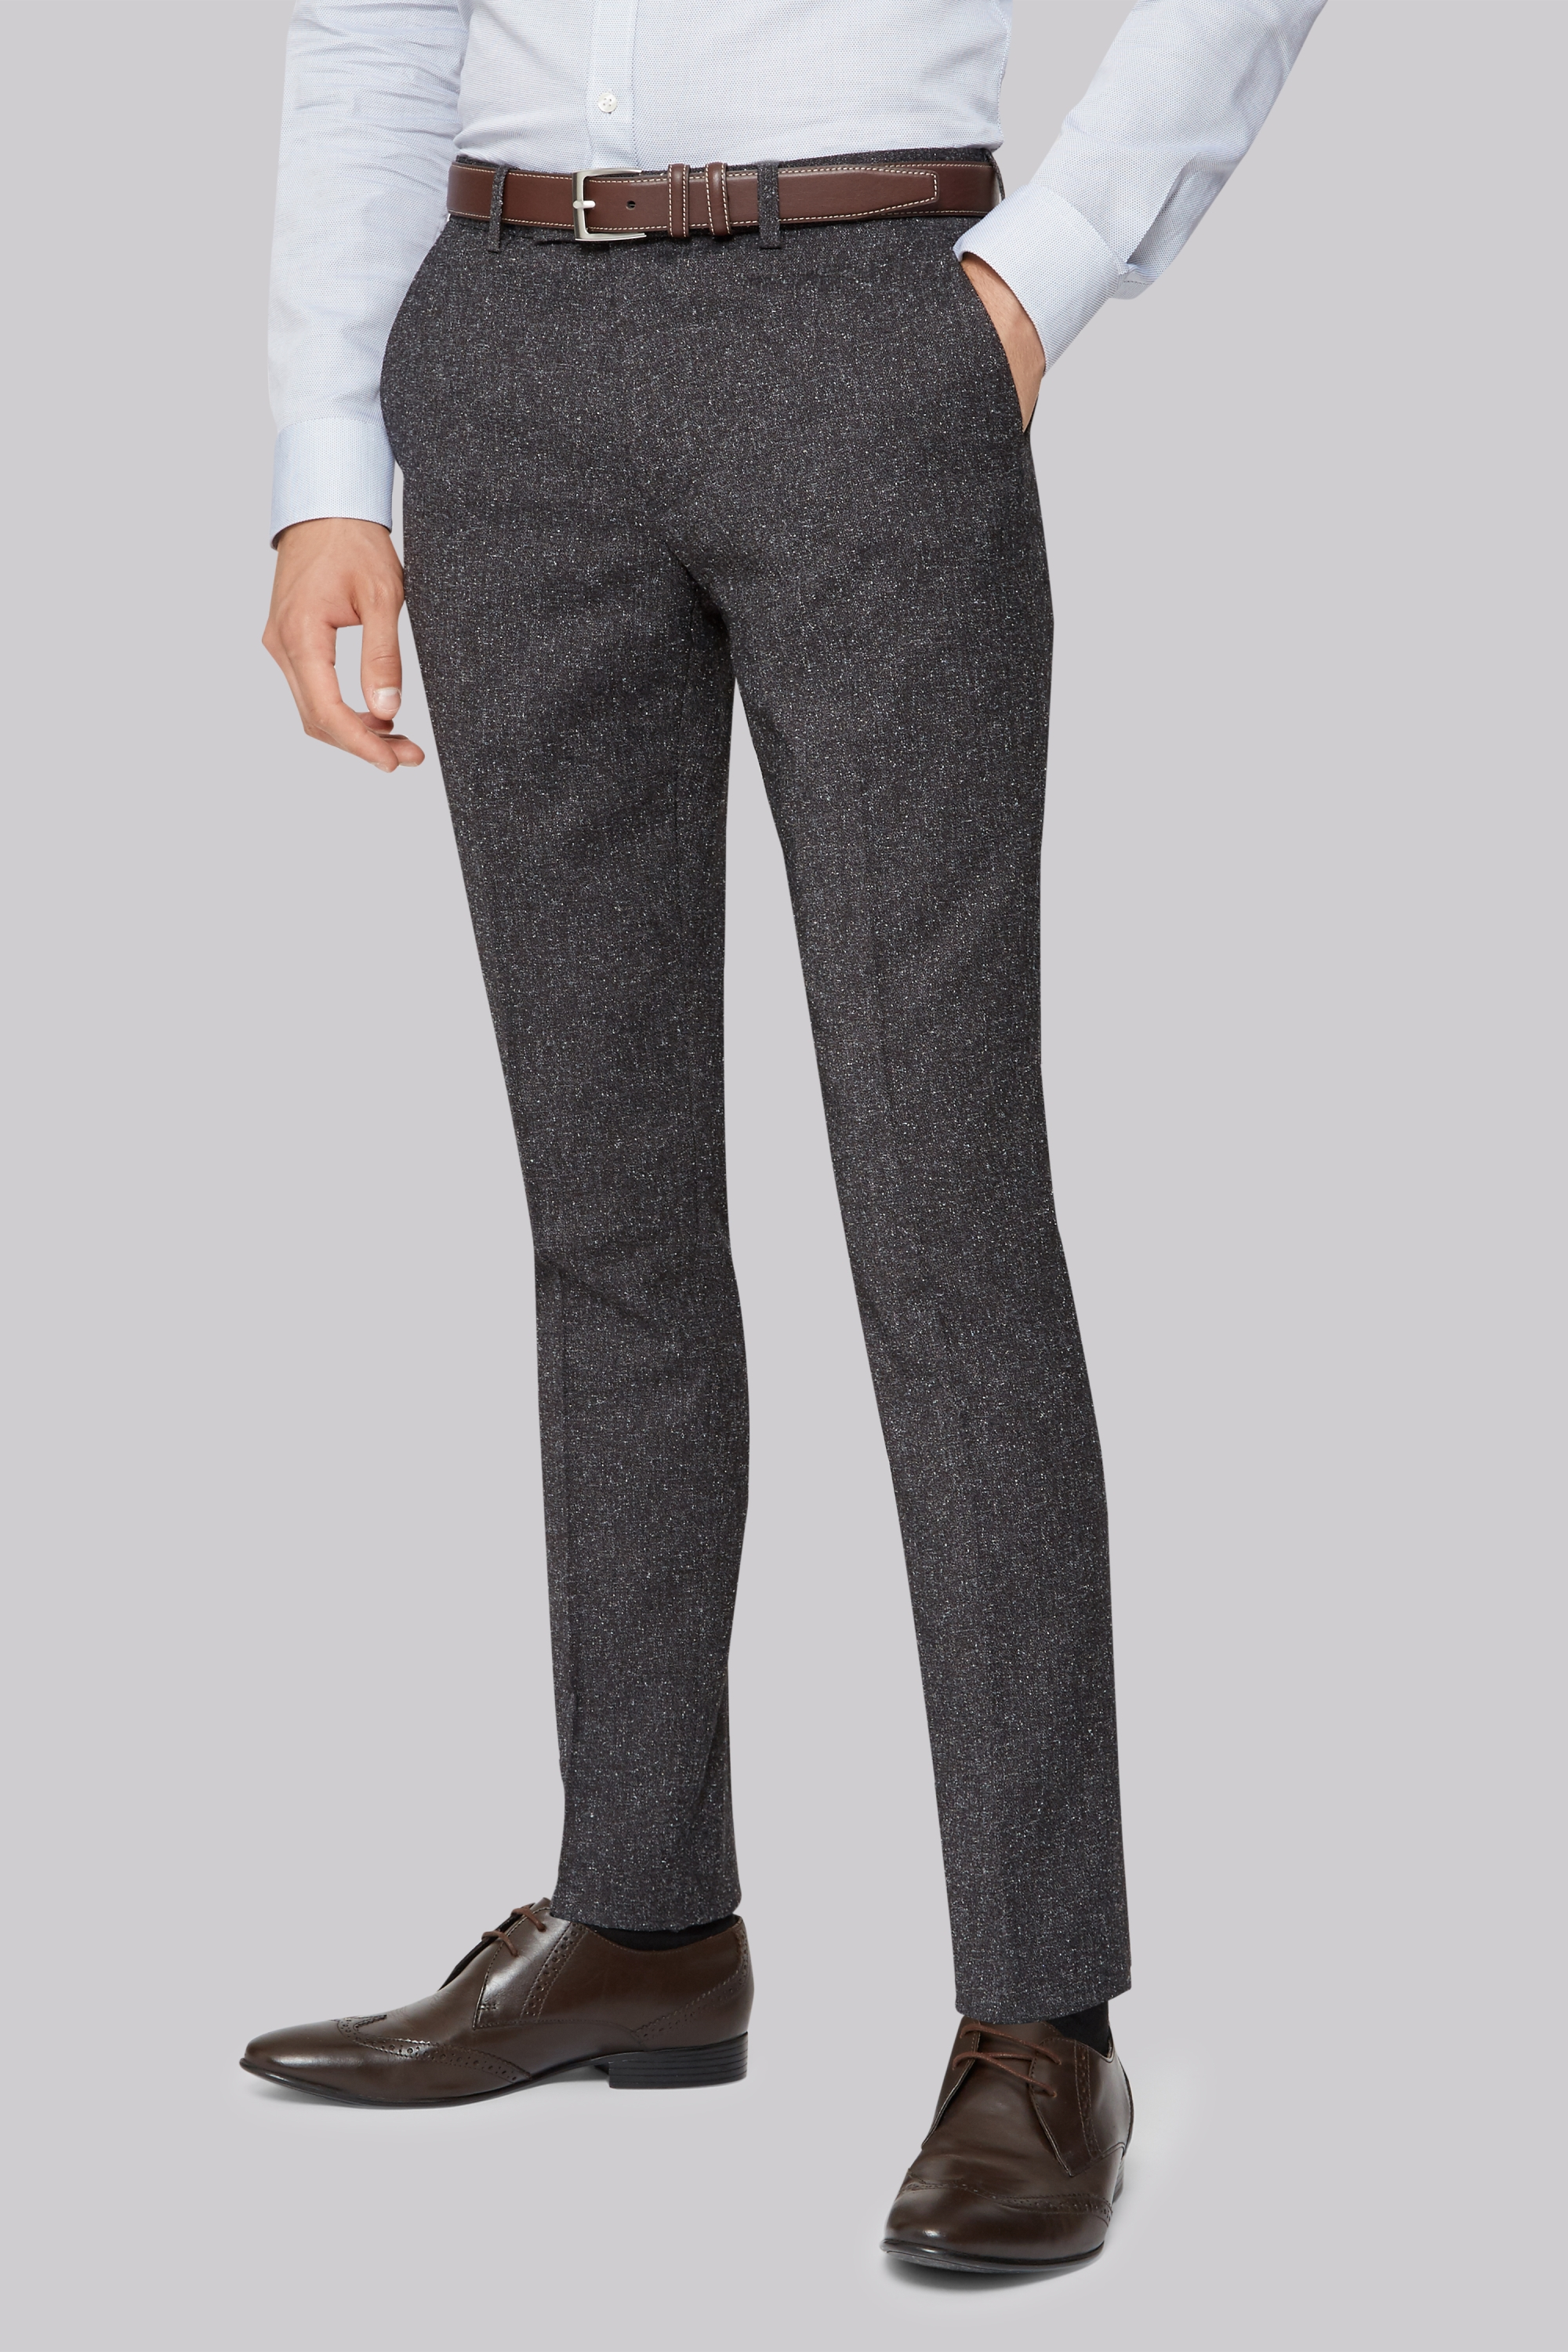 Moss London Skinny Smart Trousers - Charcoal Moss Bros. Sale Best Wholesale VVl1s9D41